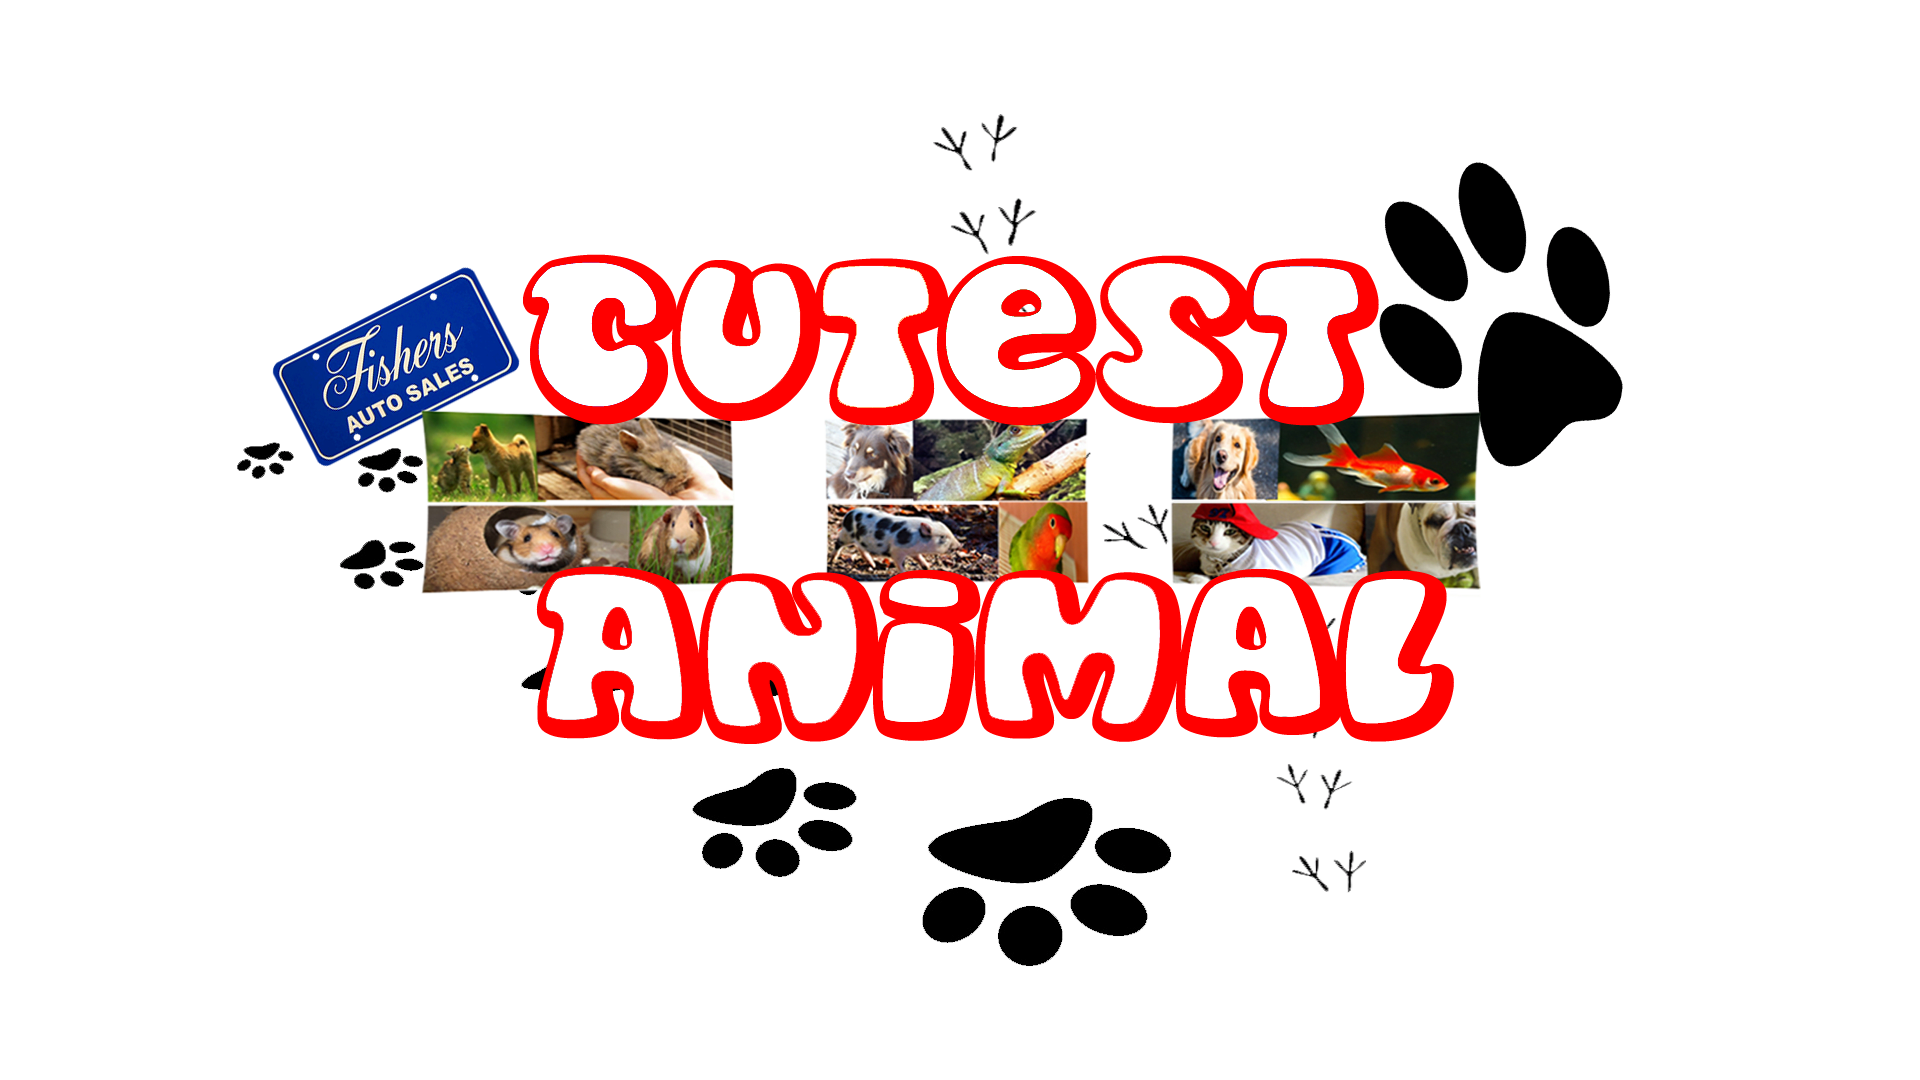 Fisher s Auto Sales Cutest Animal Contest